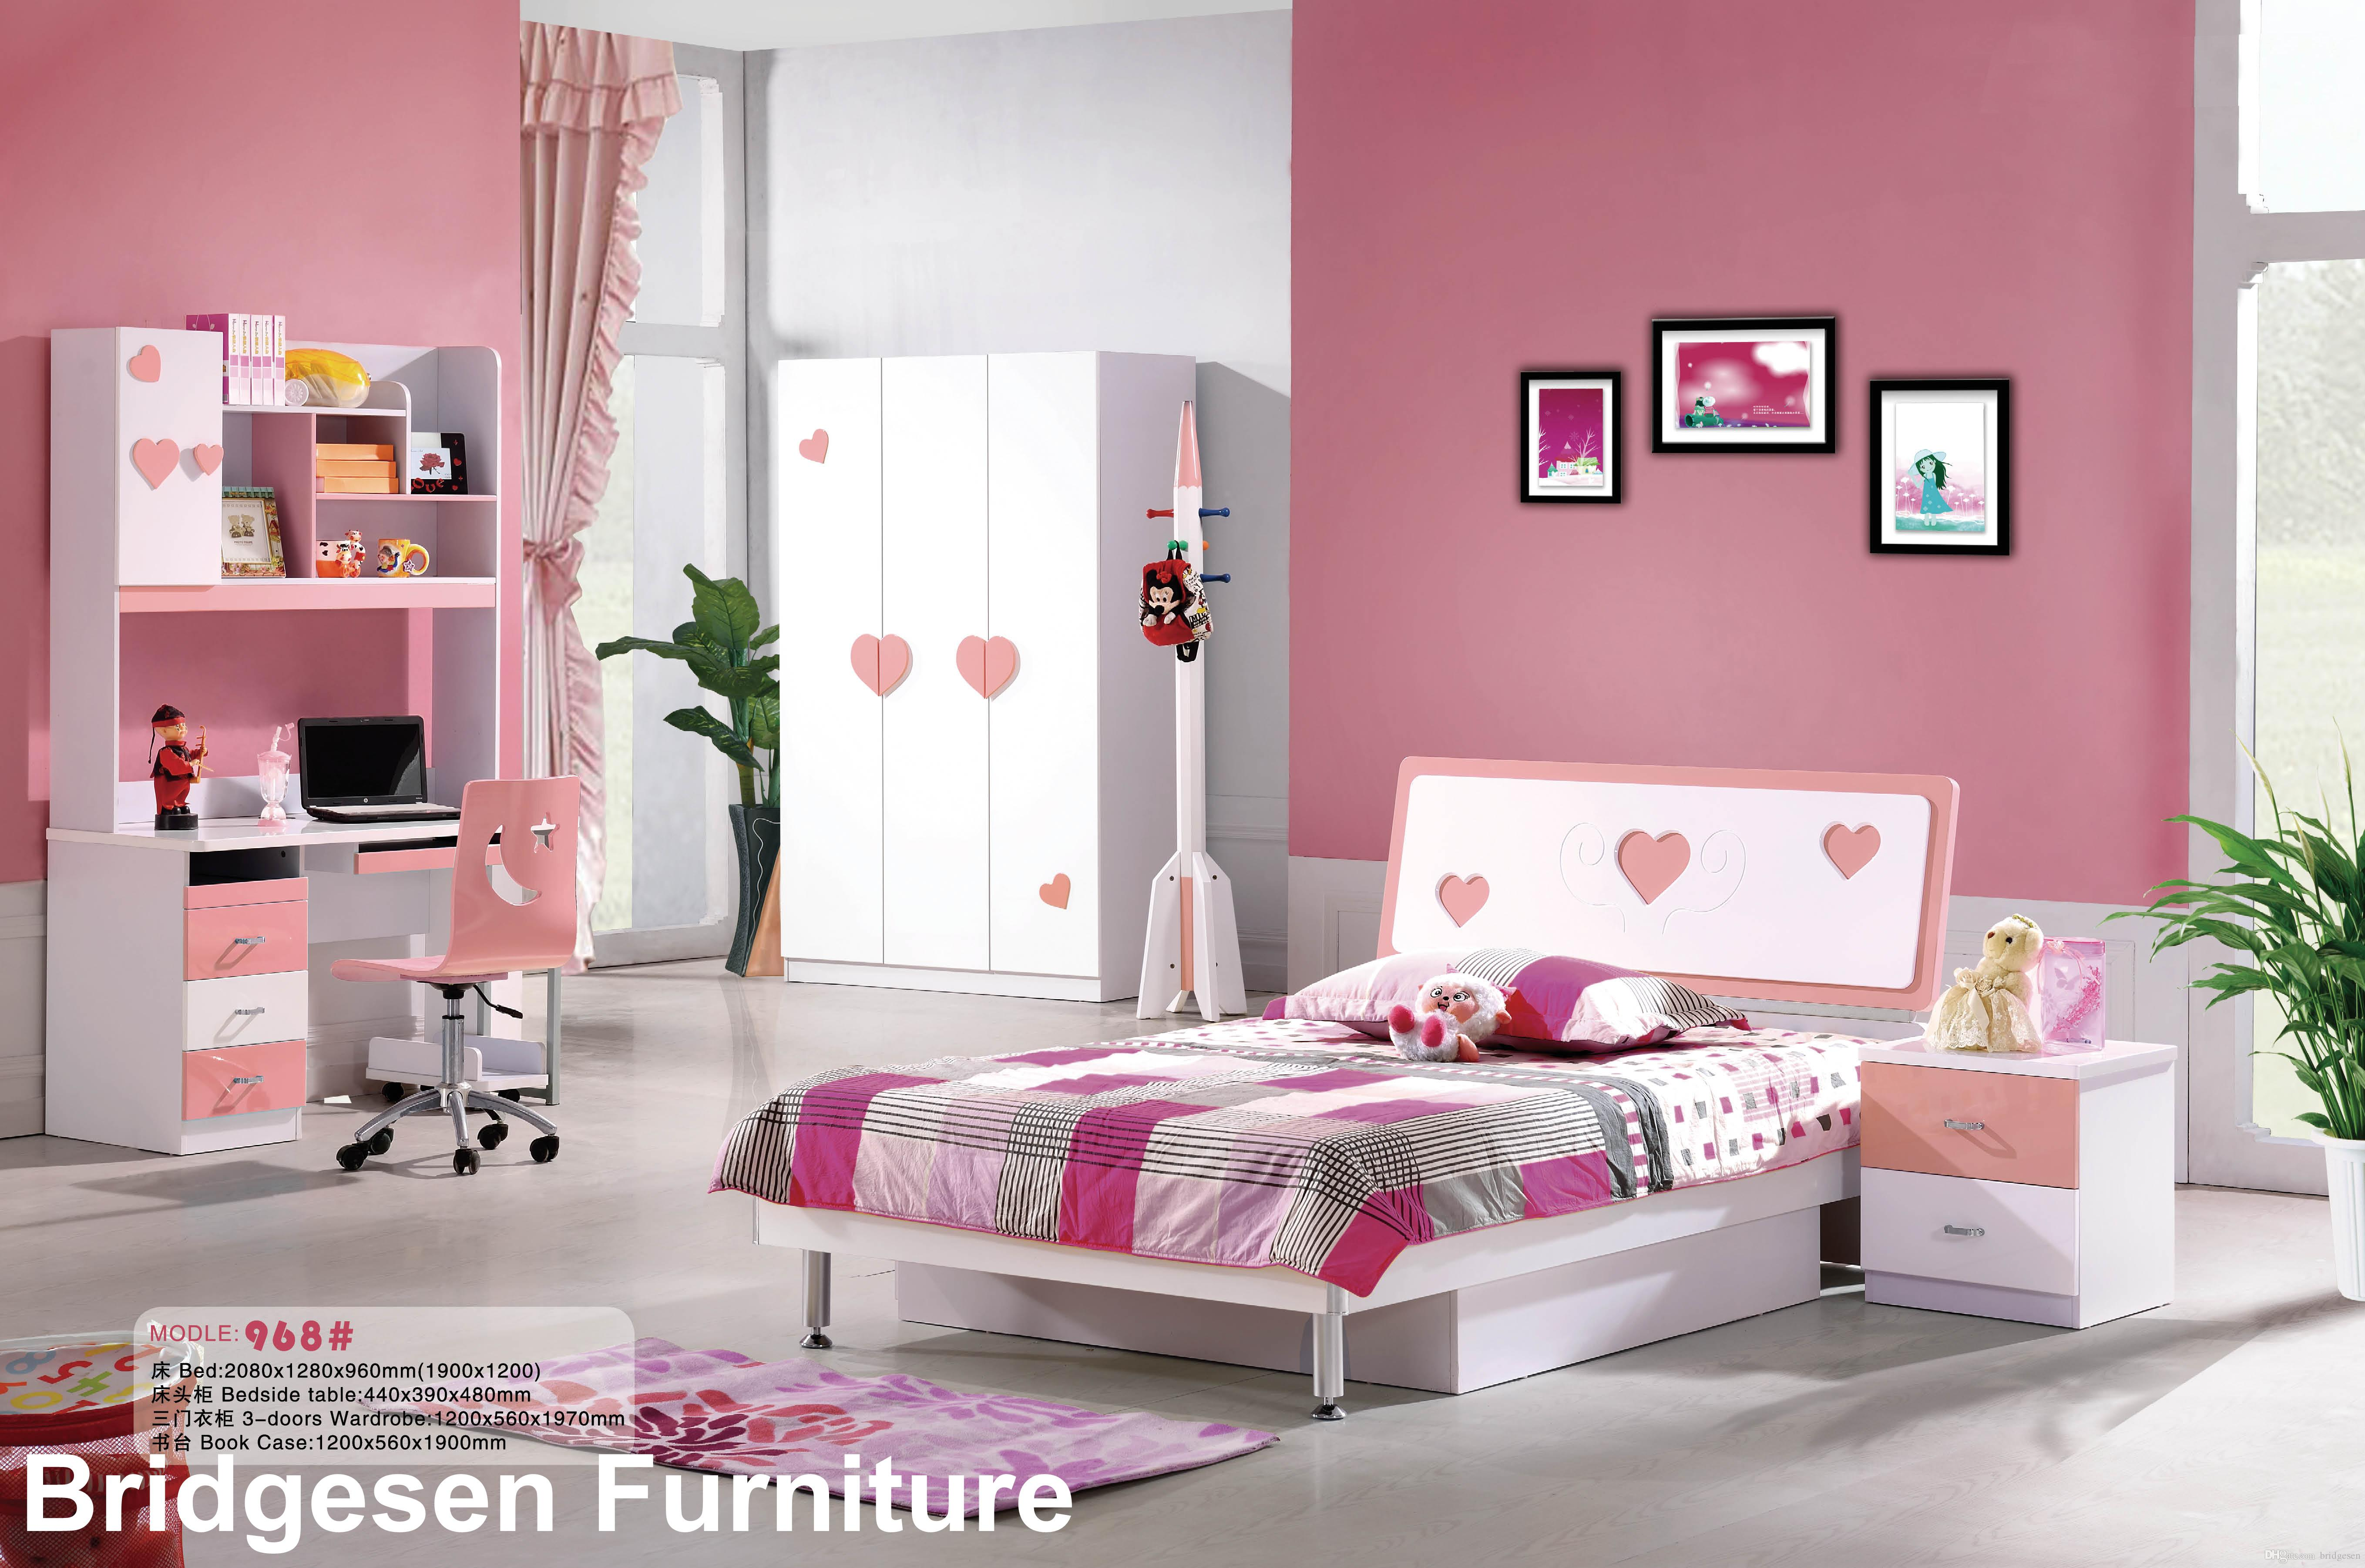 wardrobe furniture sets online | wardrobe furniture sets for sale